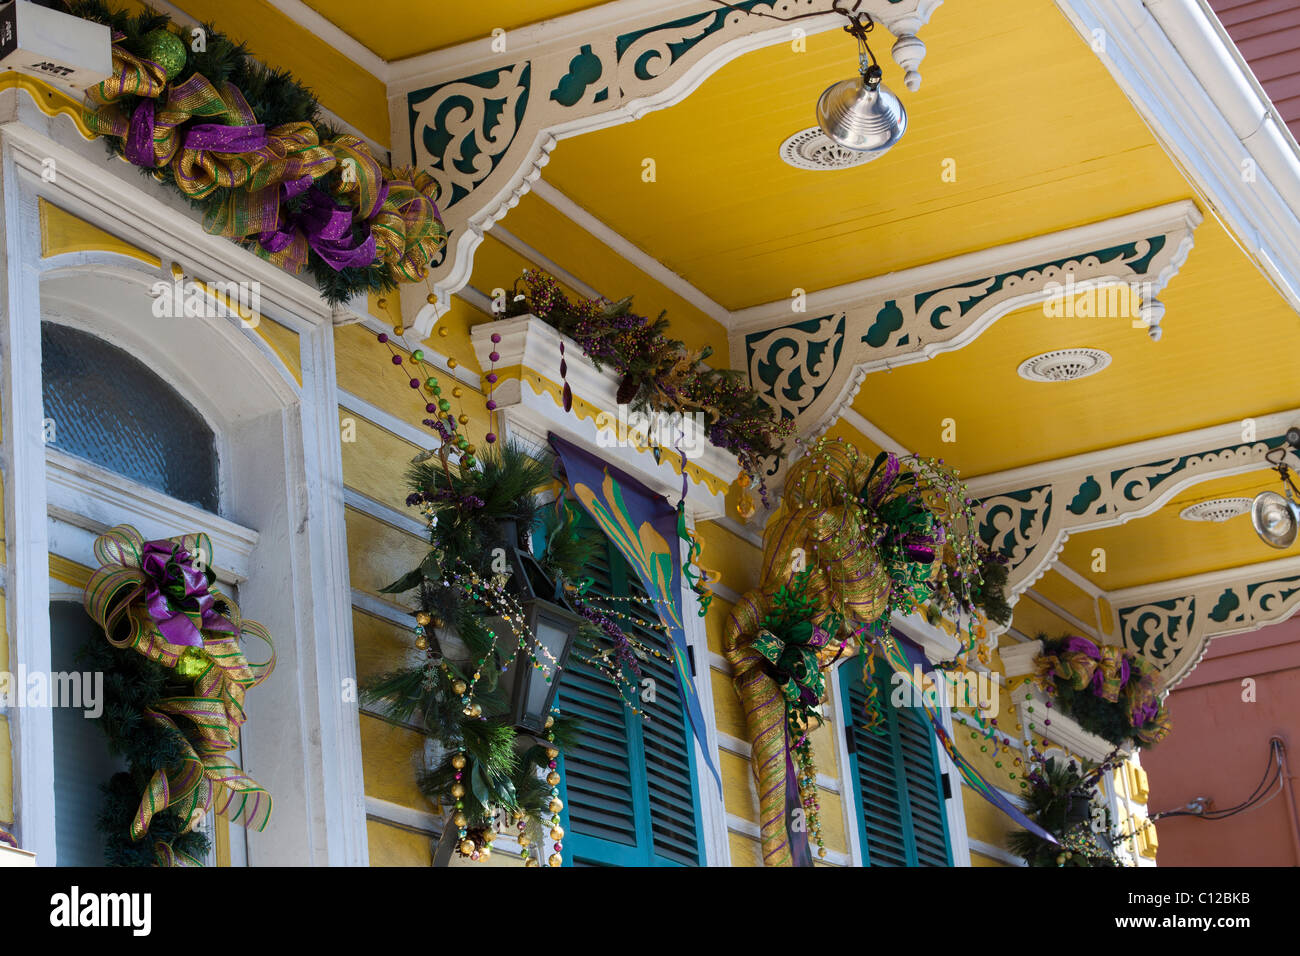 Closeup of decorative corbels with windows decorated for Mardi Gras on a Creole townhouse in the French Quarter - Stock Image